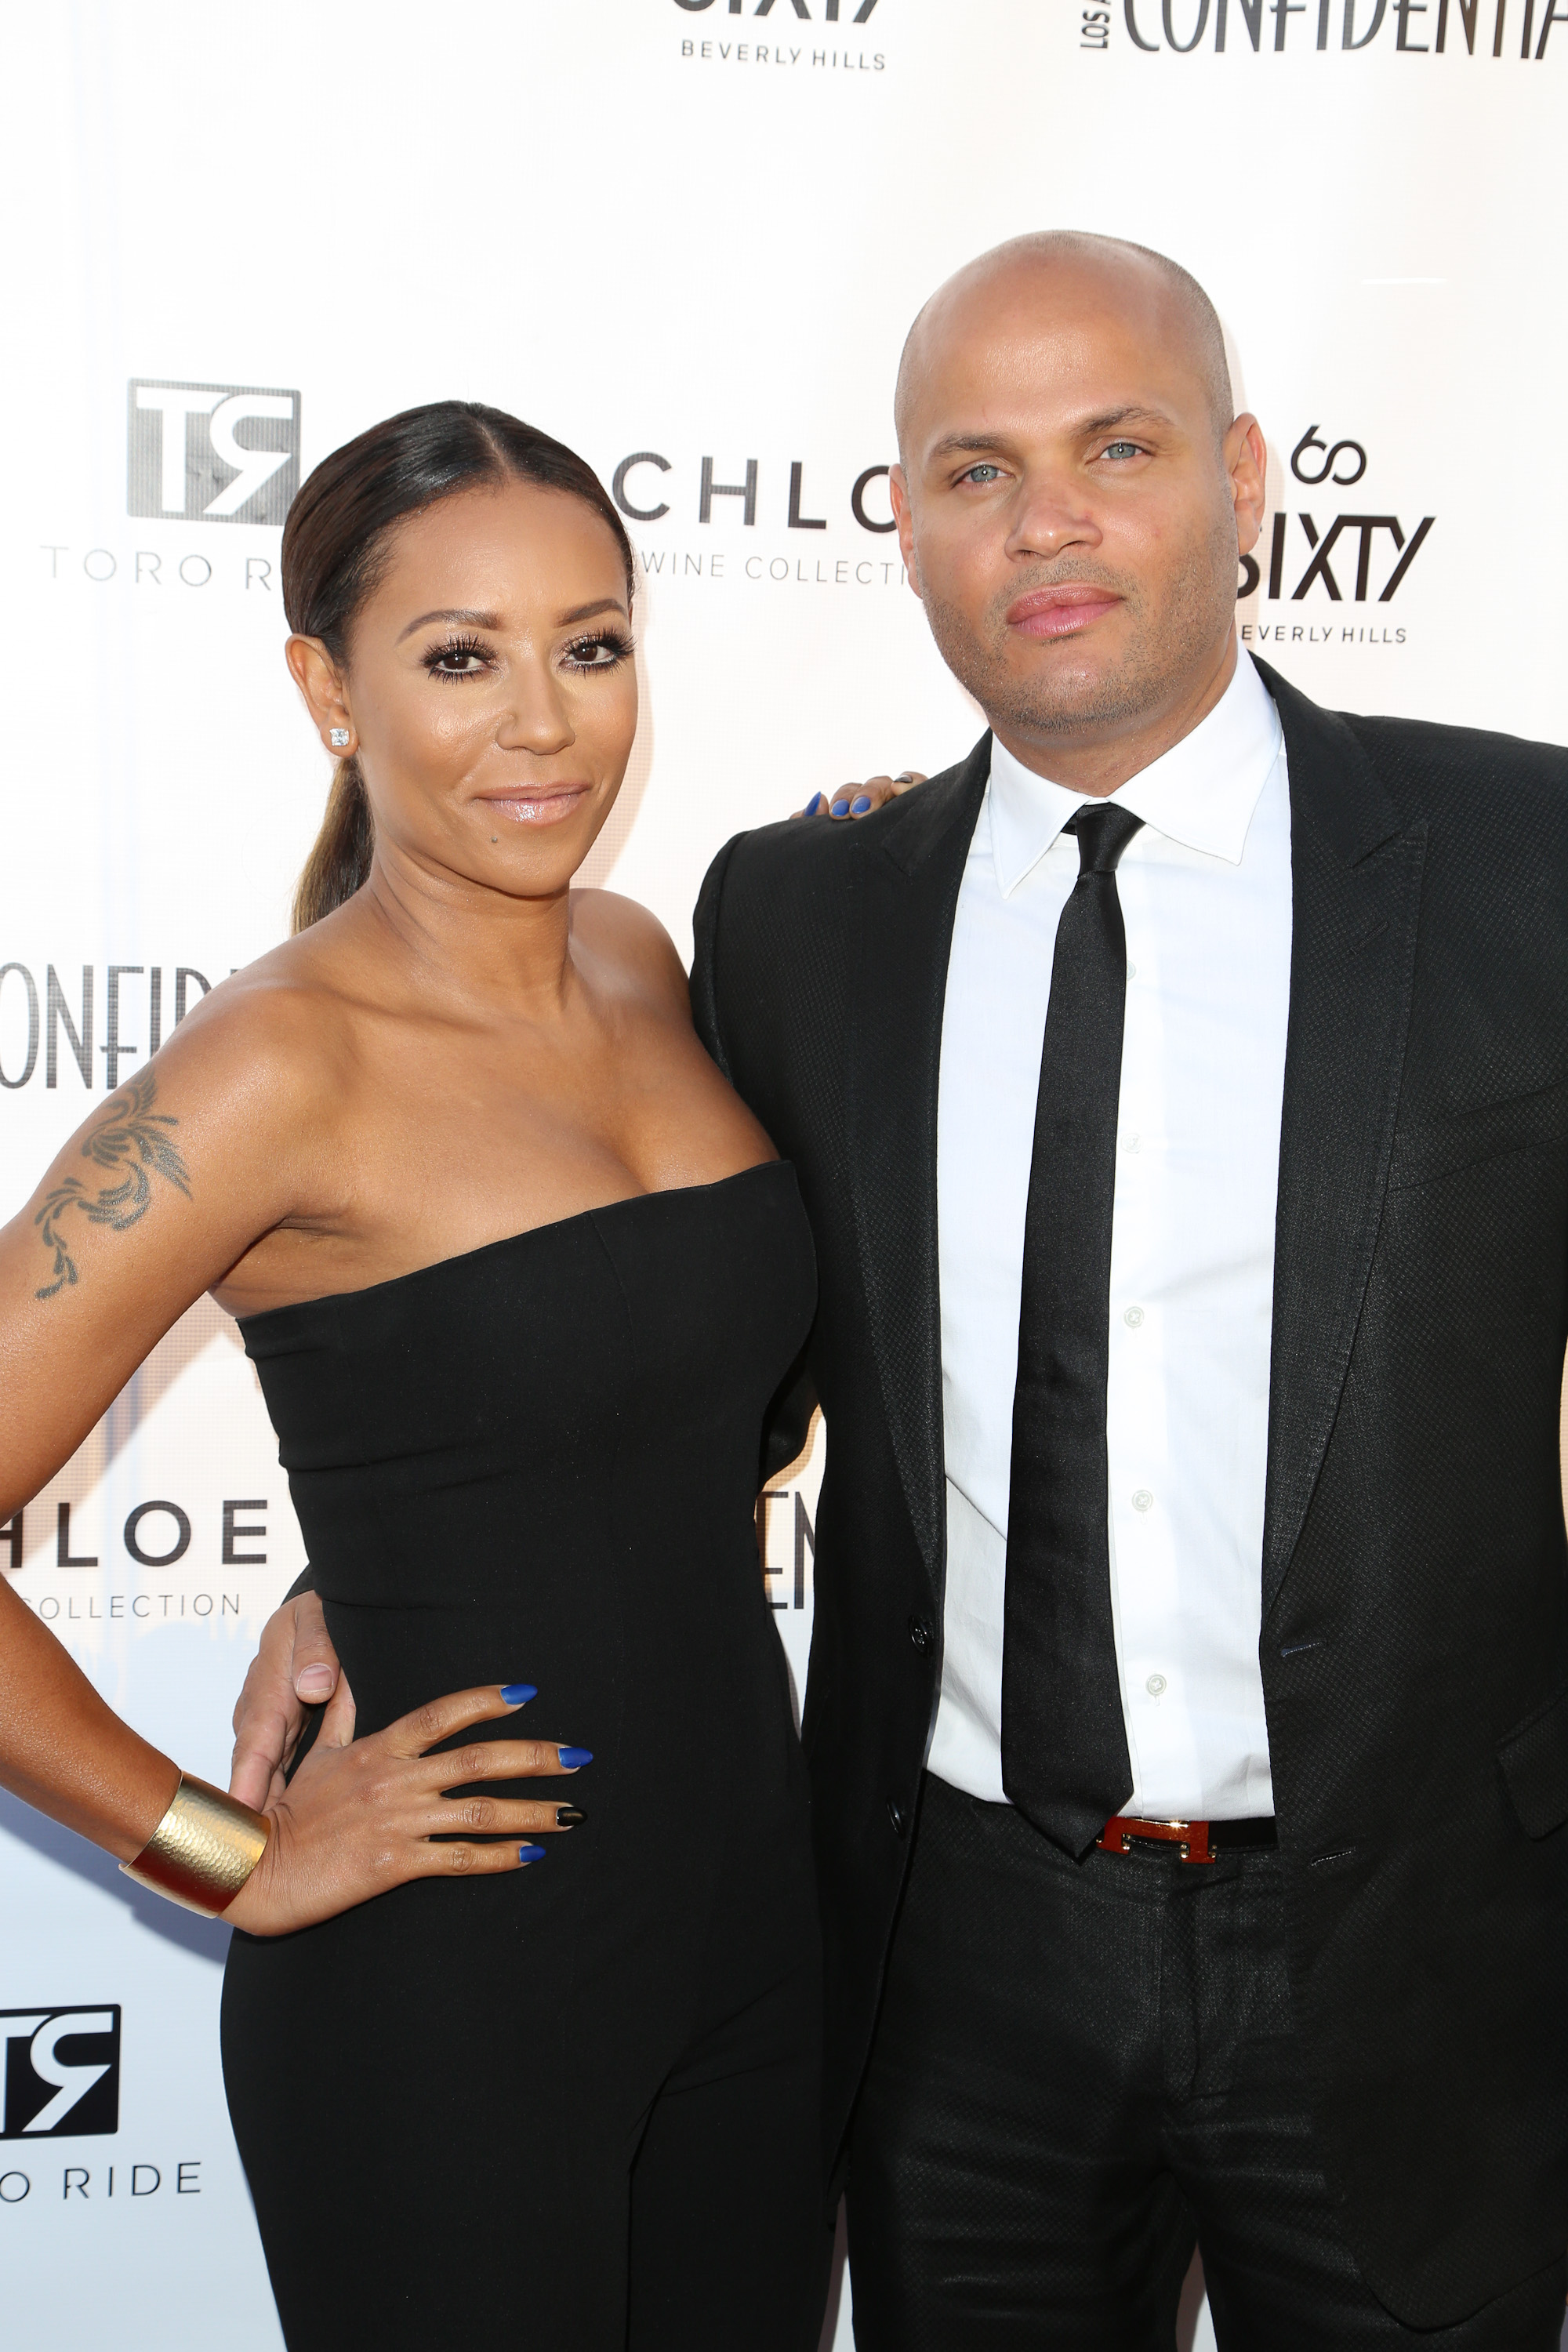 Singer Mel B. (L) and Stephen Belafonte attend the Los Angeles Confidential celebration of the Women of Influence issue with Robin Wright on June 4, 2014 in Beverly Hills, California.